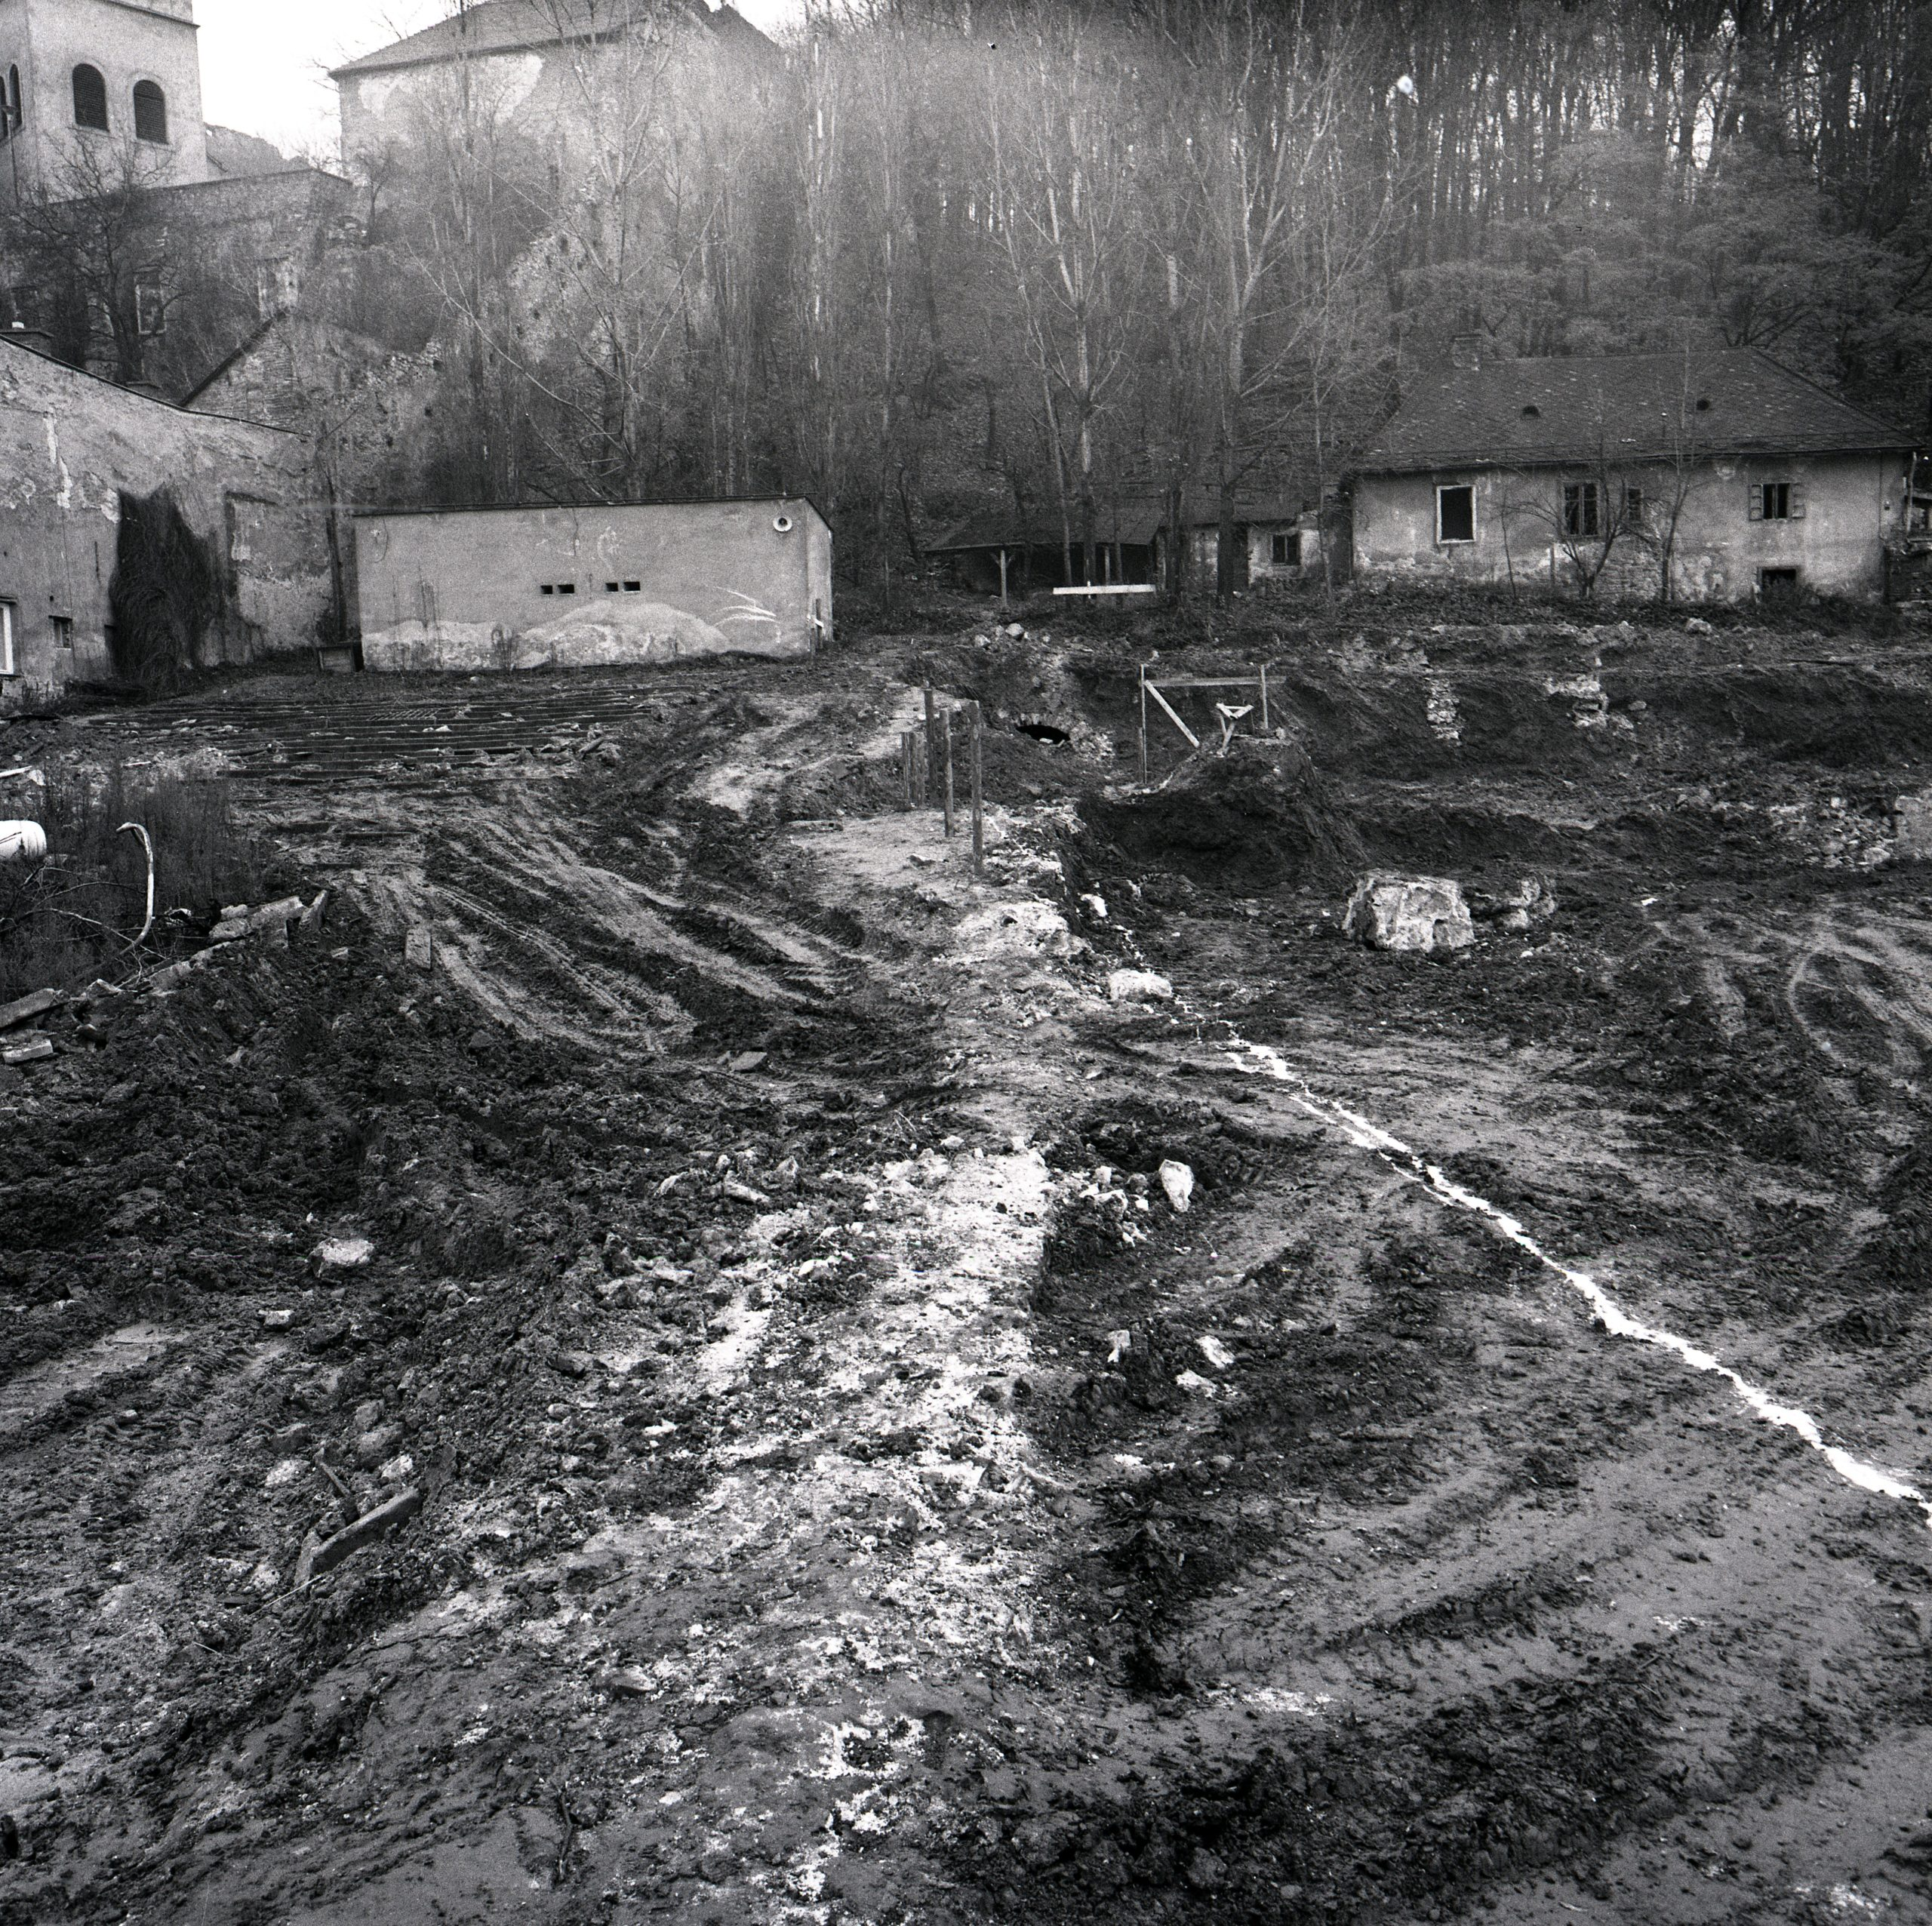 11. Demolished summer cinema as viewed from its lower part; projection booth on the left (1974).